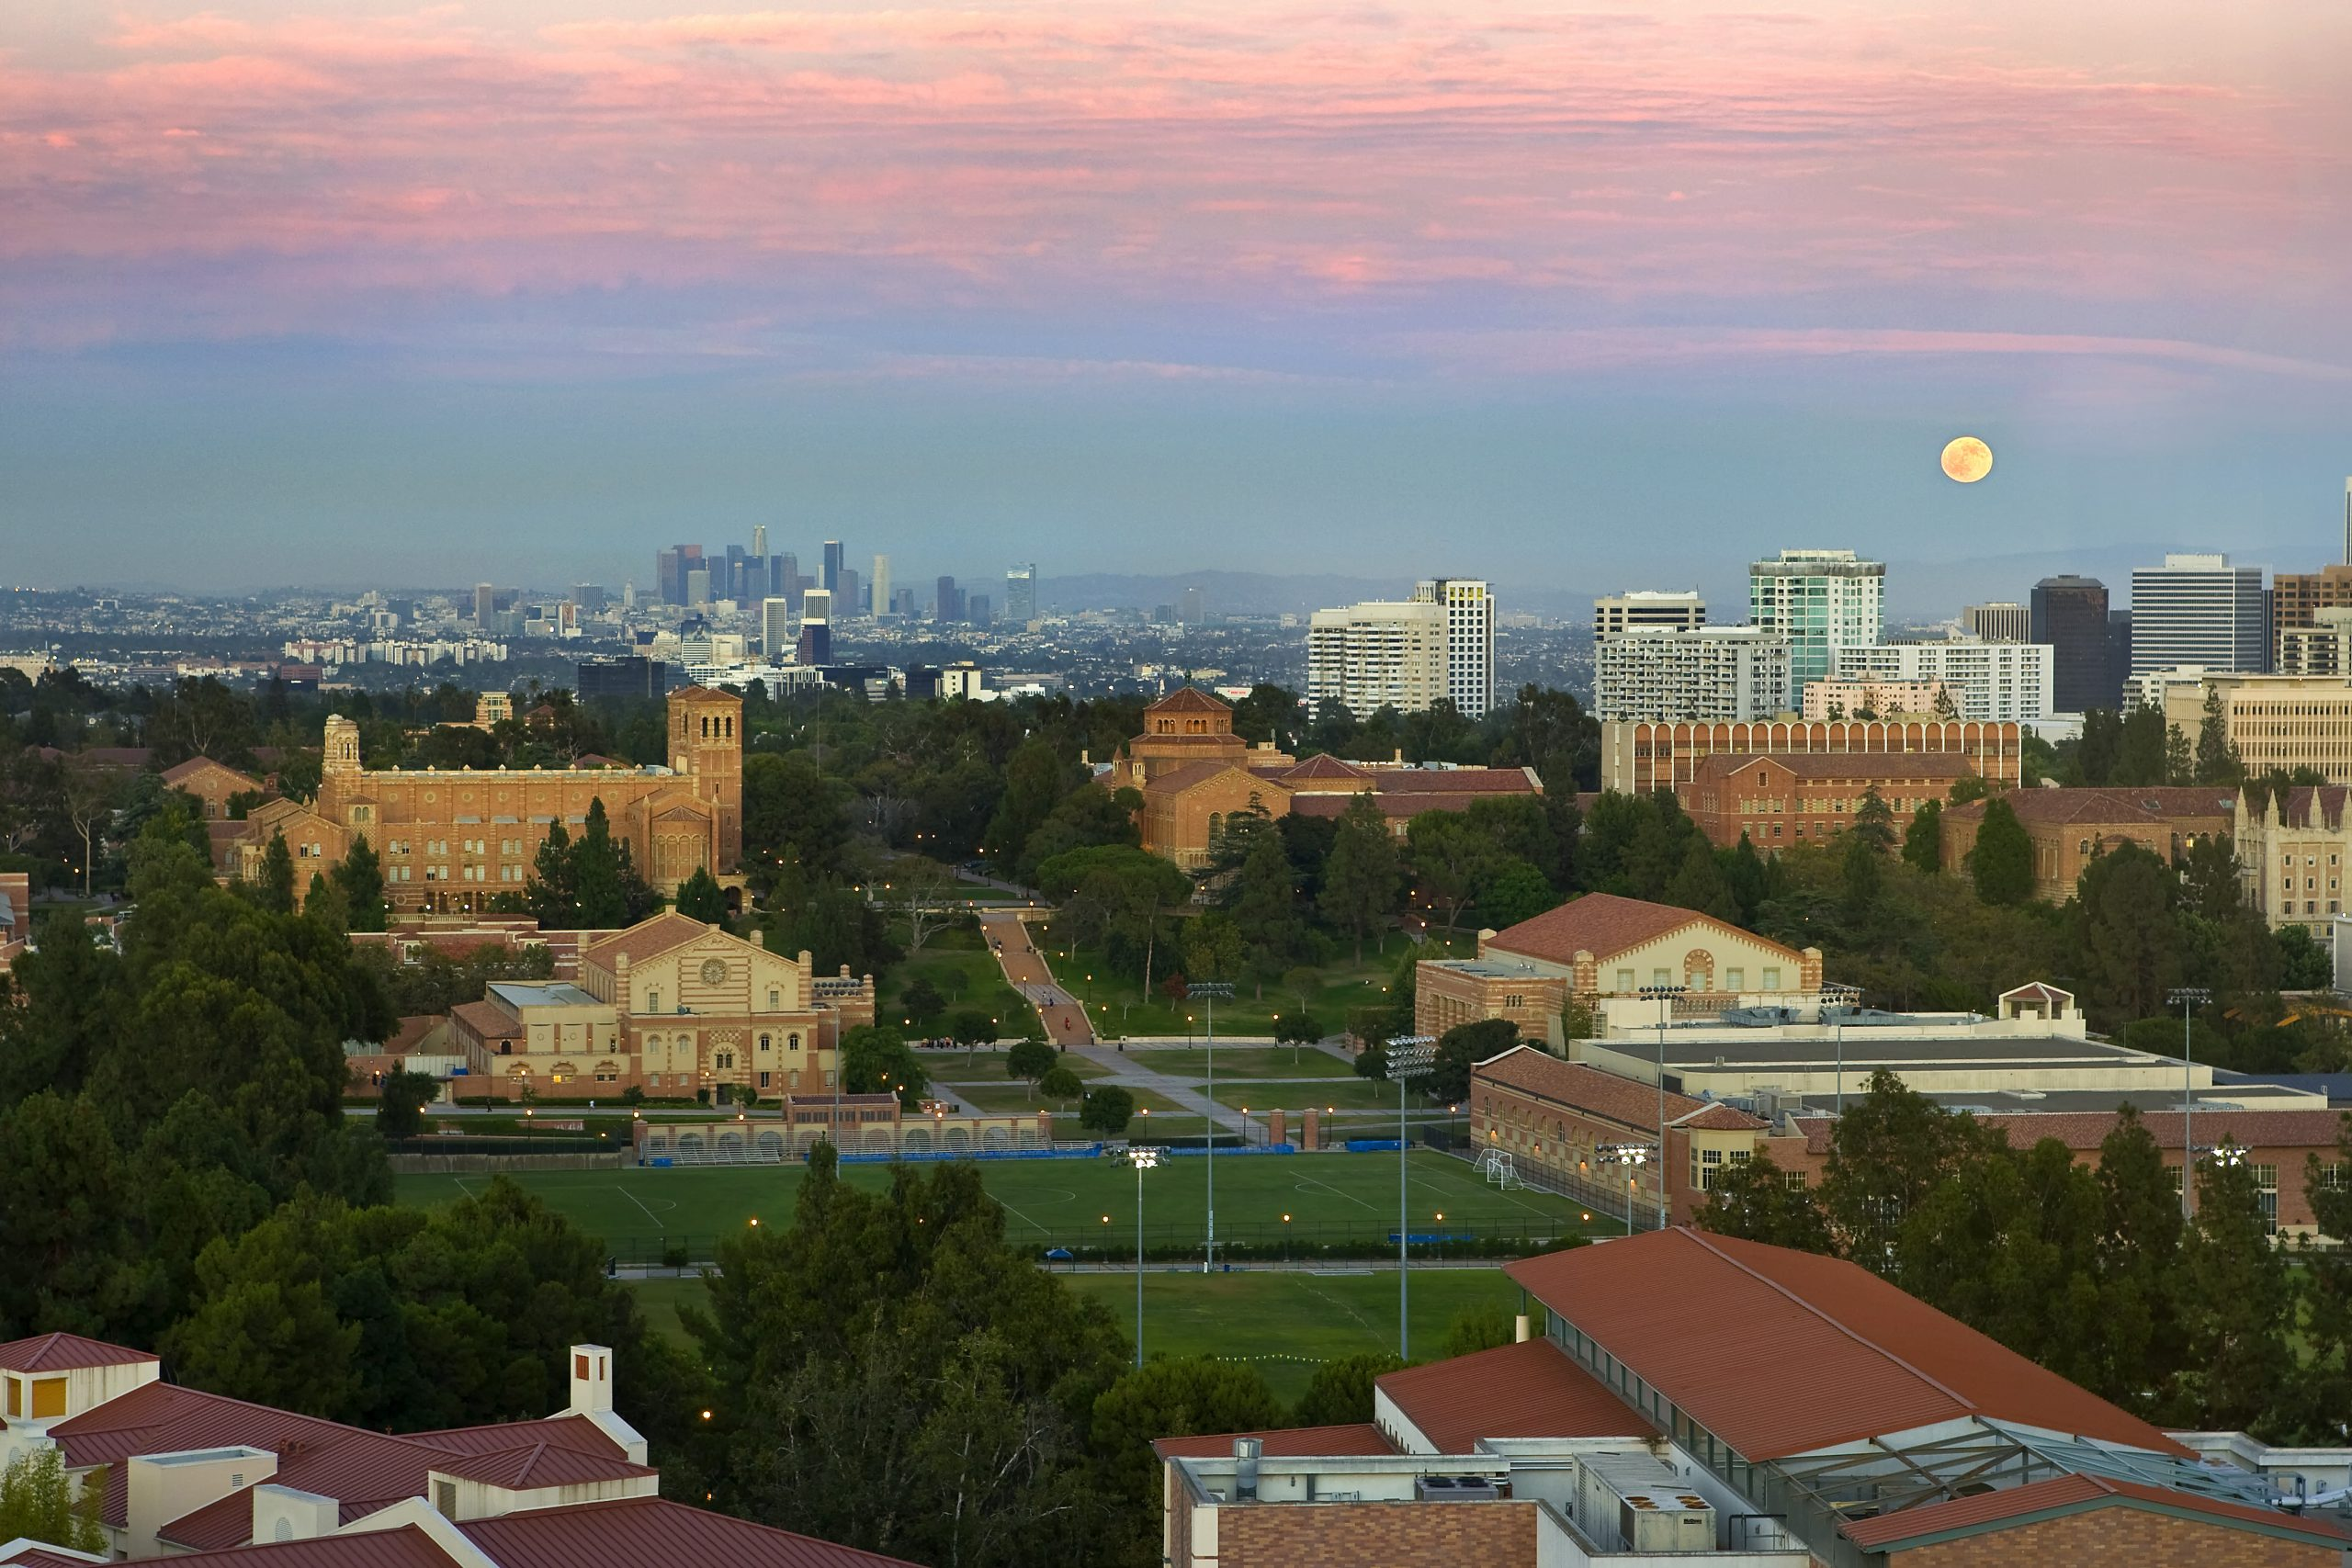 aerial view of UCLA campus and city of los angeles